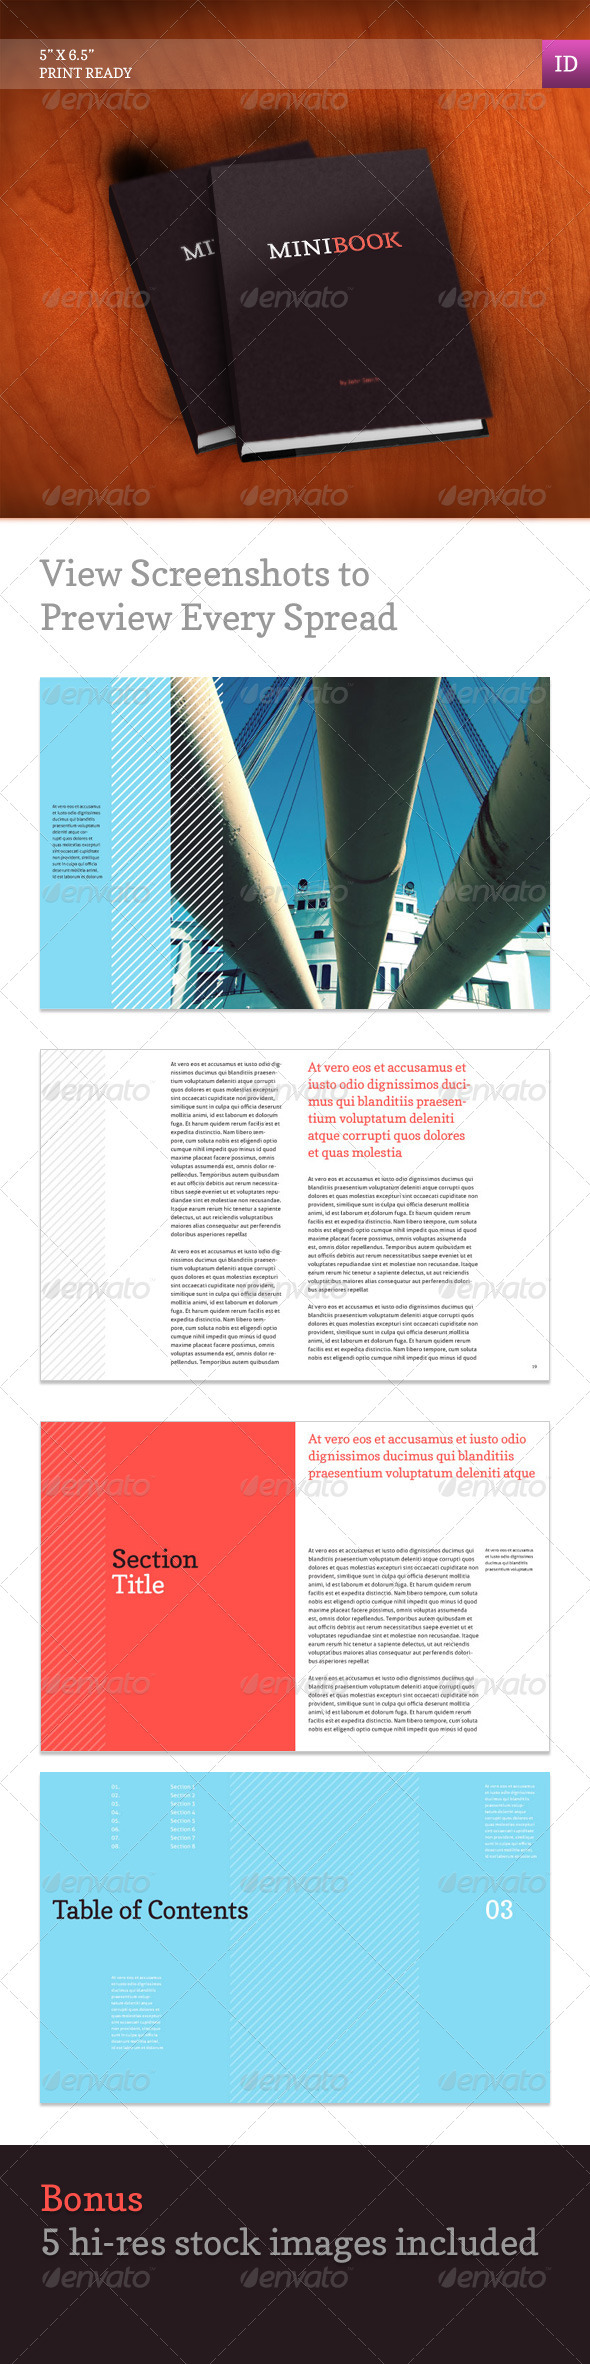 workbook template indesign - indesign graphicriver mini book 1376003